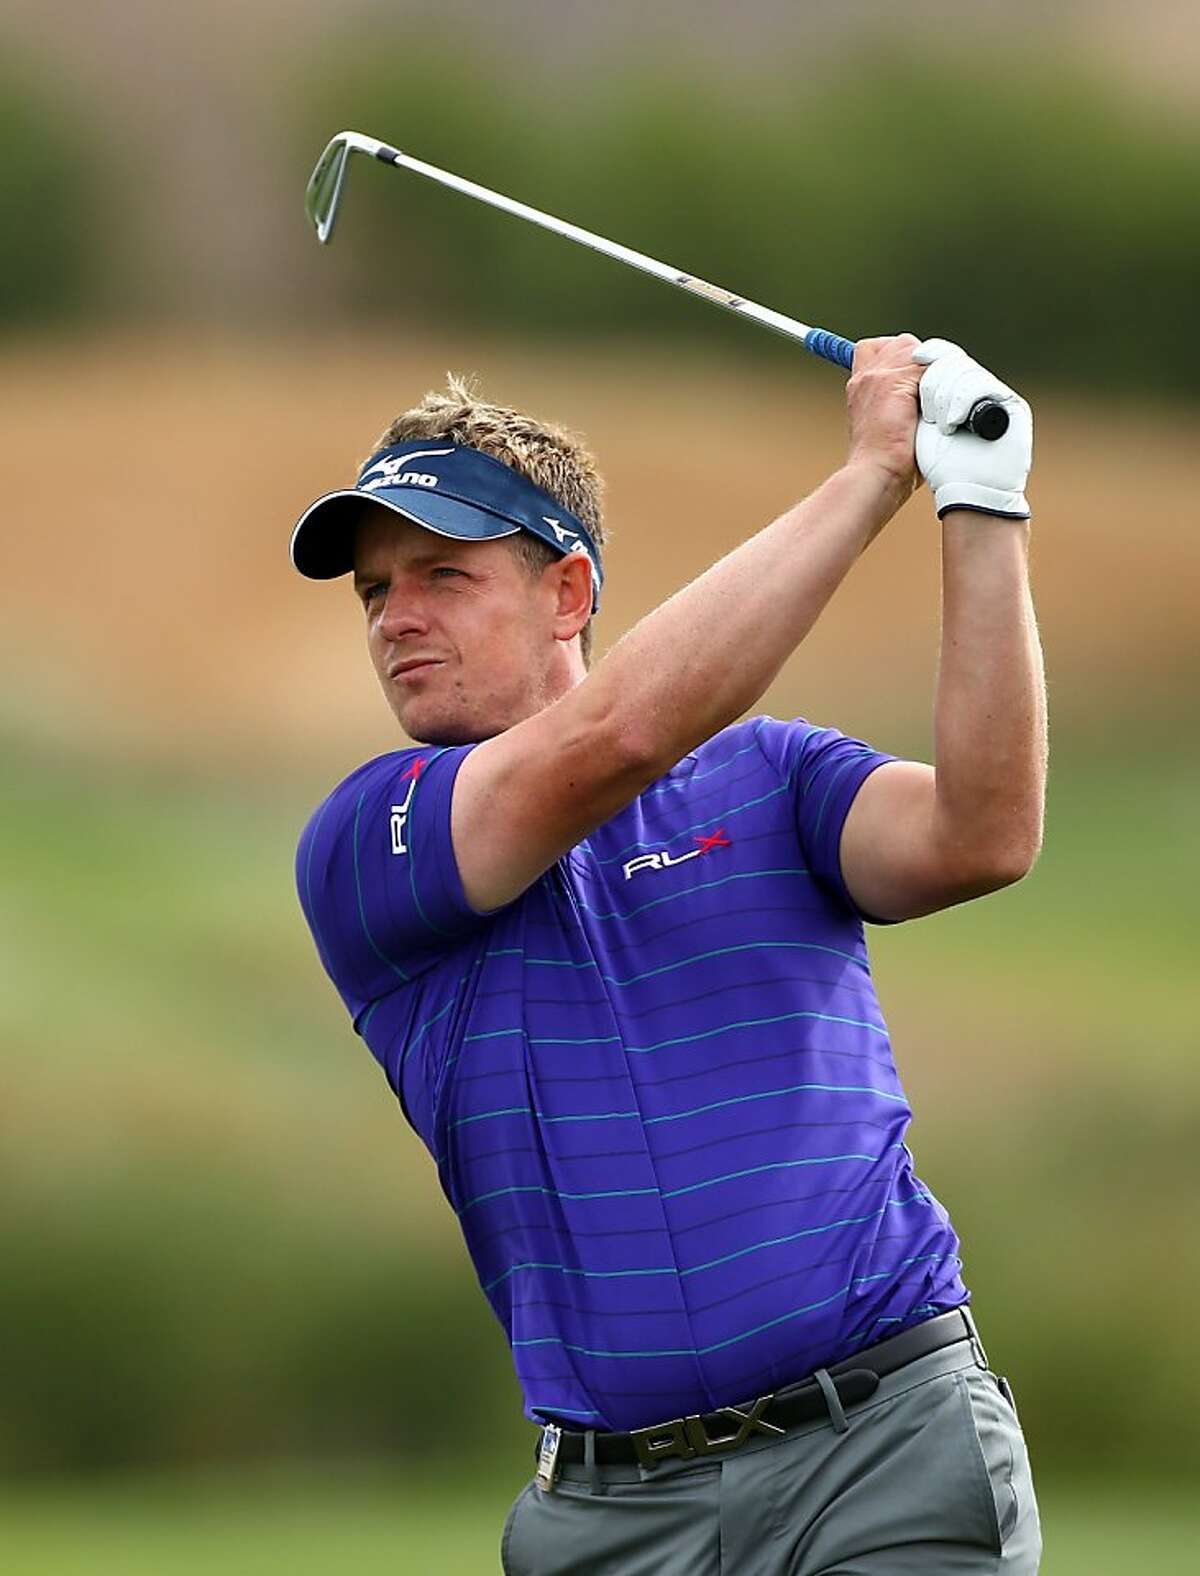 MADRID, SPAIN - OCTOBER 07: Luke Donald of England in action during round two of the Madrid Masters Golf at El Encin Golf & Hotel on October 7, 2011 in Madrid, Spain. (Photo by Julian Finney/Getty Images)